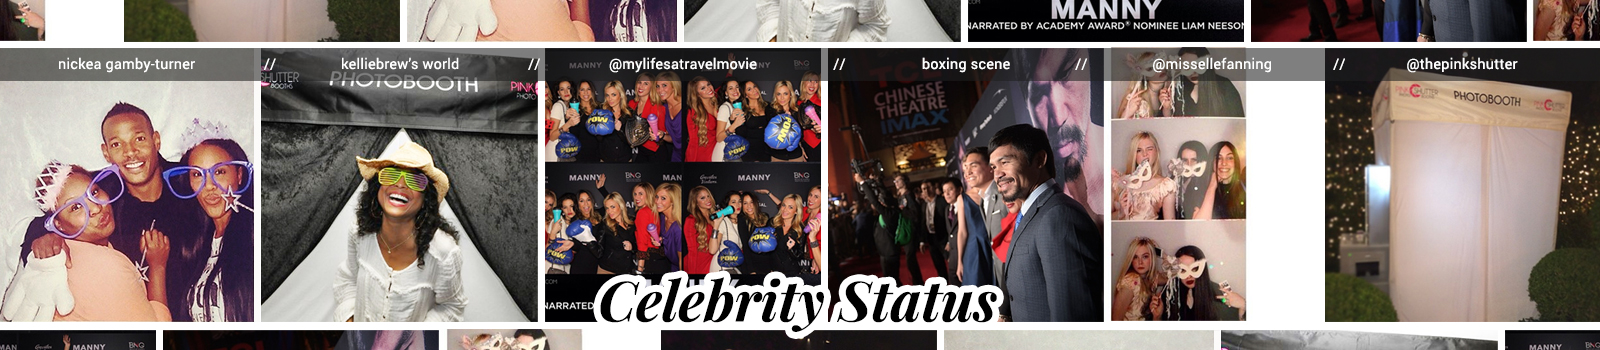 Event Photos Show Marlon Wayans, Elle Fanning, and Manny Pacquiao